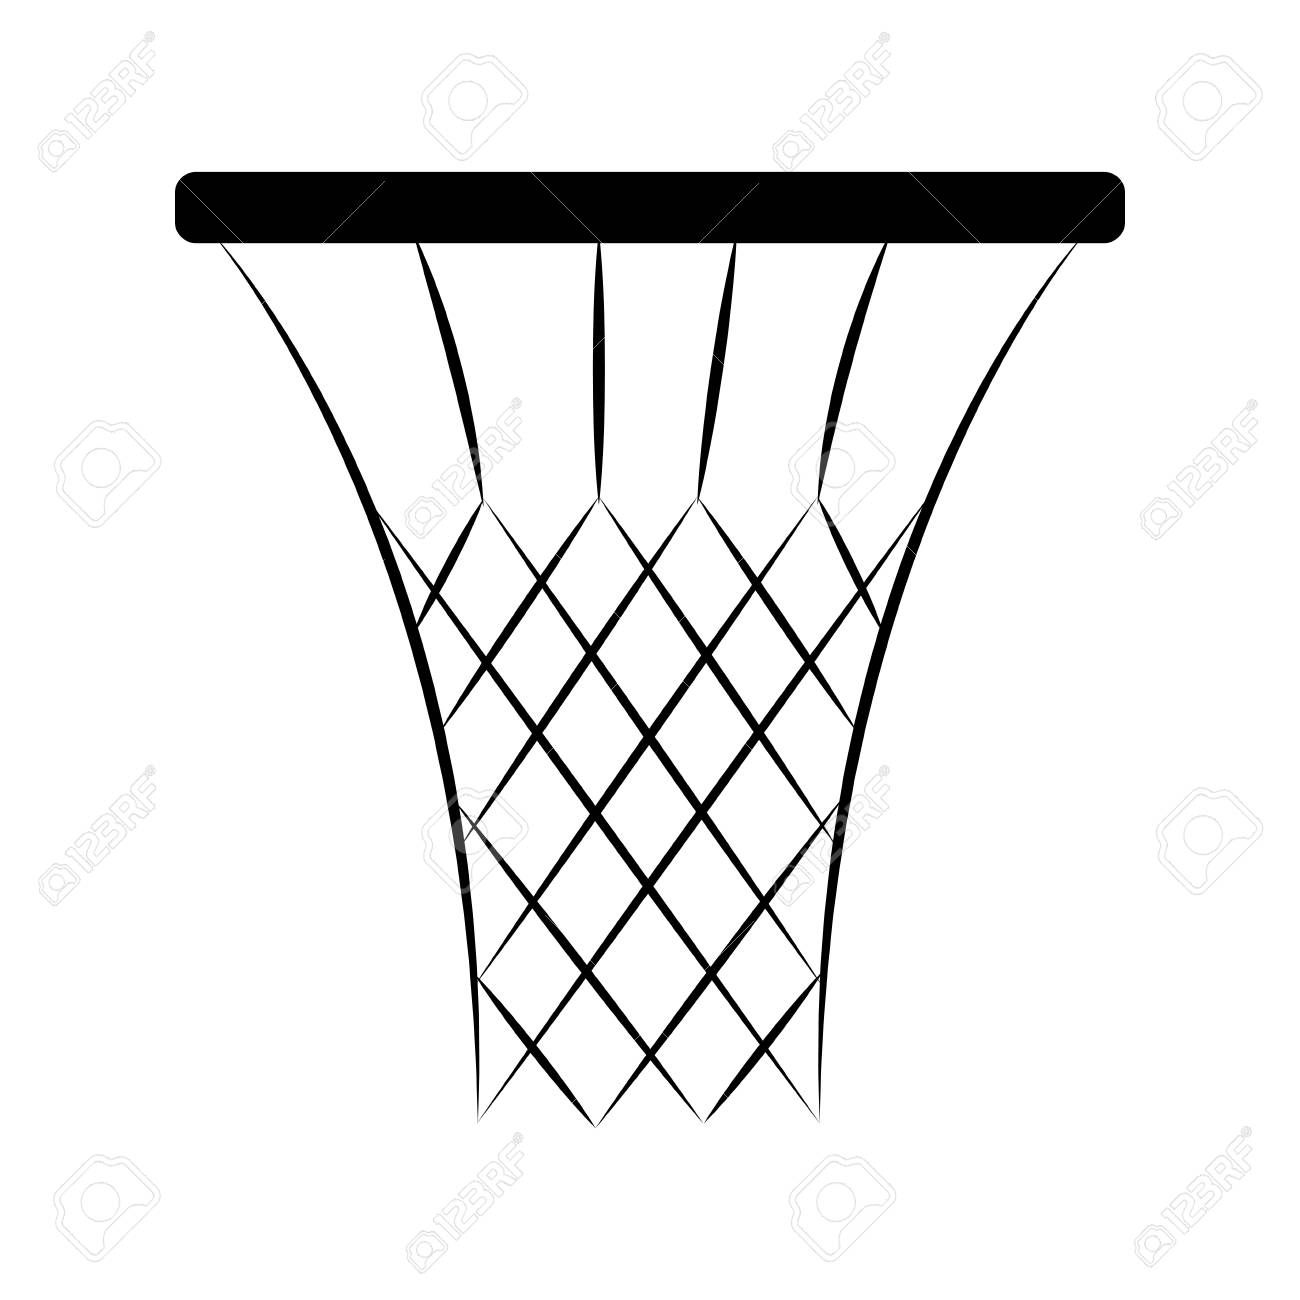 Abstract Basketball net in black and white illustration..